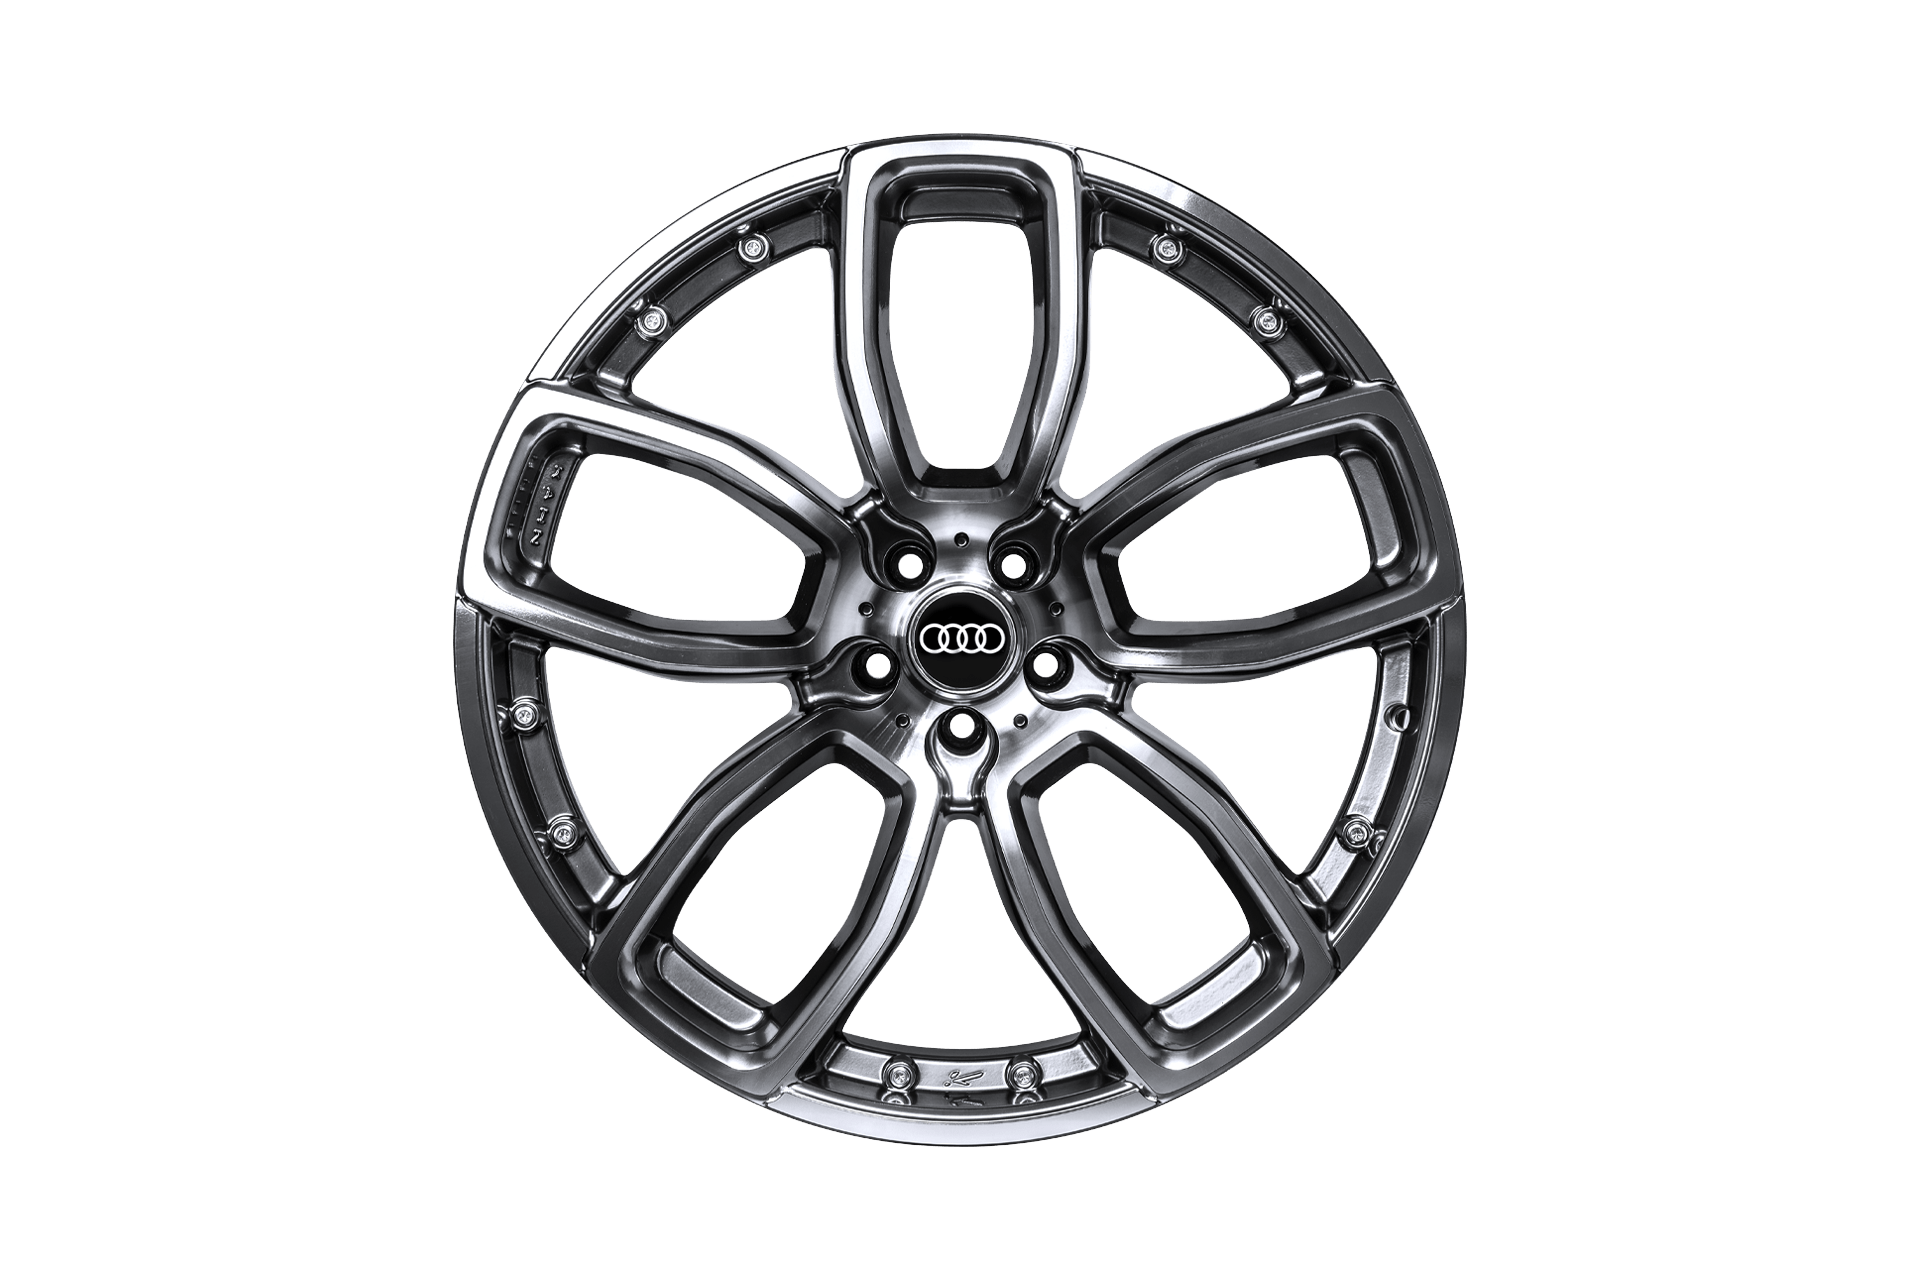 Audi Q7 (2016-PRESENT) 600LE Light Alloy Wheels